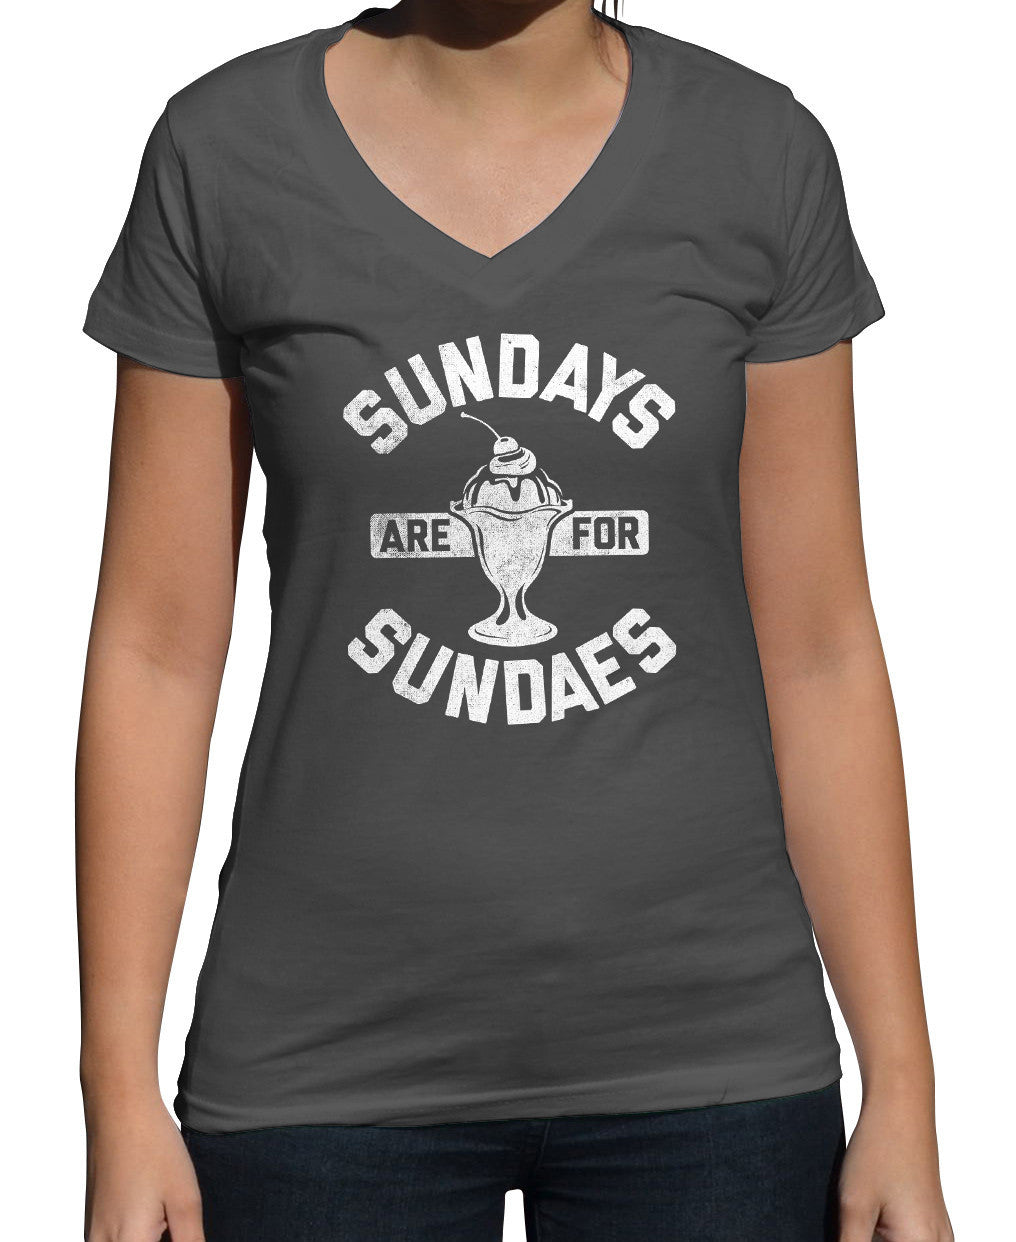 Women's Sundays are for Sundaes Vneck T-Shirt - Cool Hipster Foodie Ice Cream Fashion